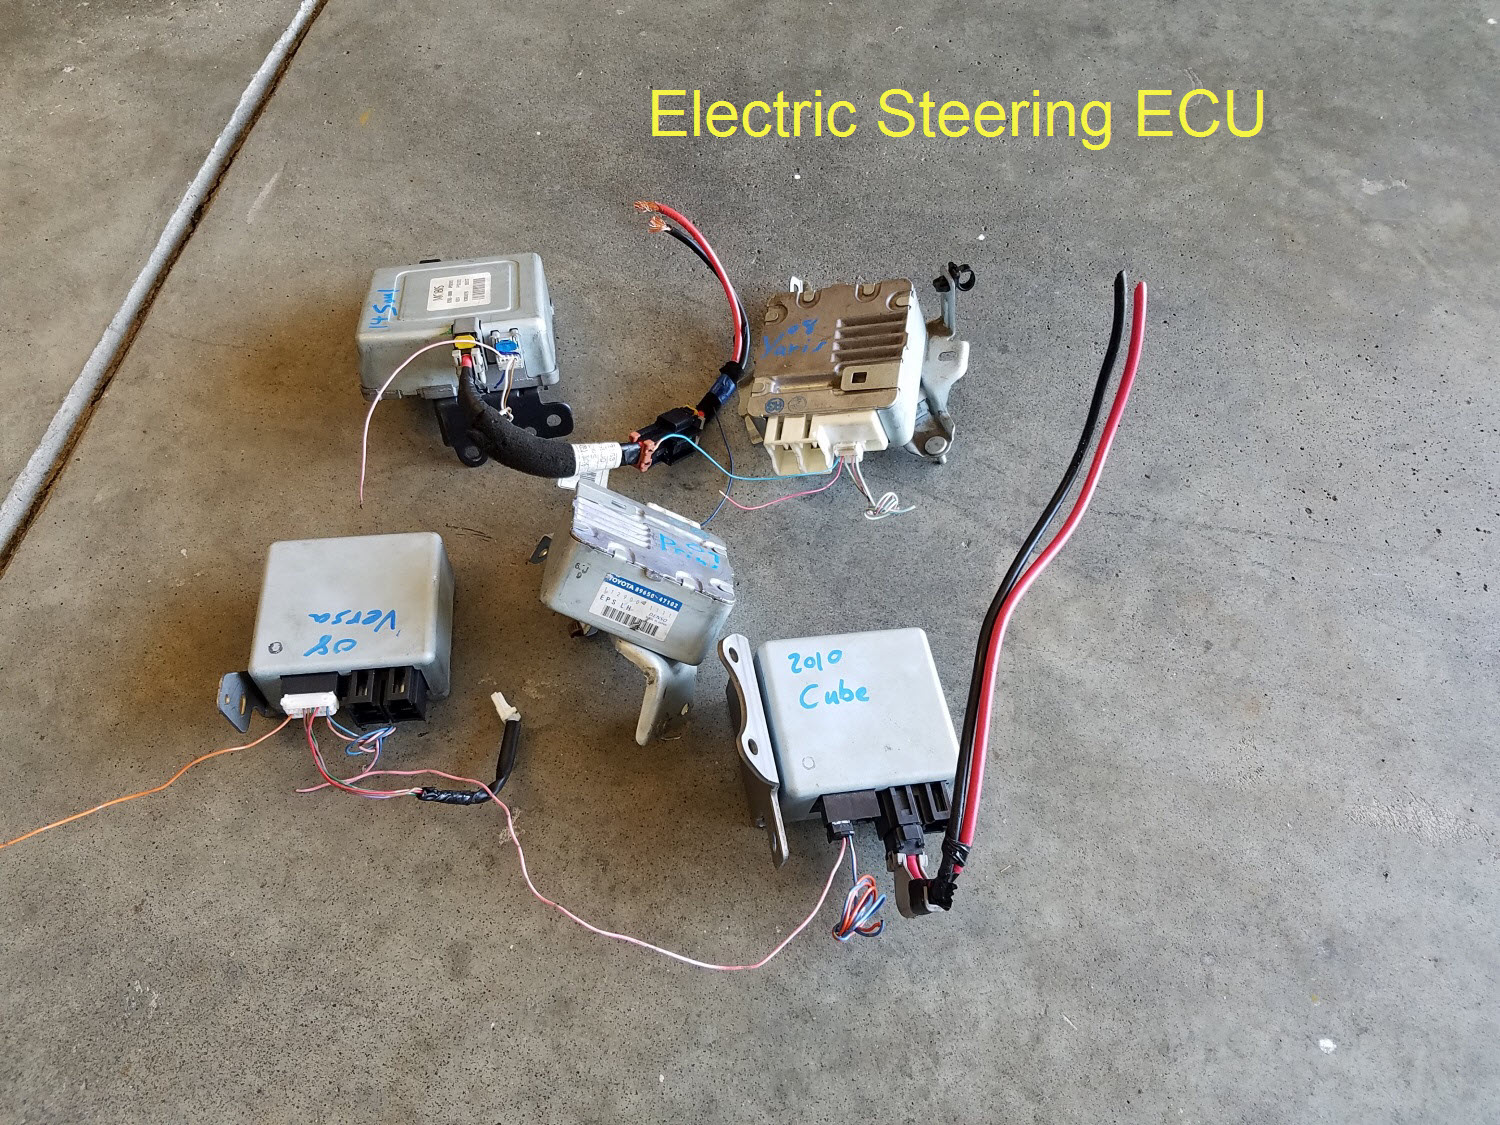 Ford Pinto Ignition Wiring Diagram also 183668 Ford Tfi Ignition Control Modules 7 likewise 174689 Wiring Diagram Pin Out Flasher Relay likewise Watch as well Chevrolet malibu eco. on ford ignition module wiring